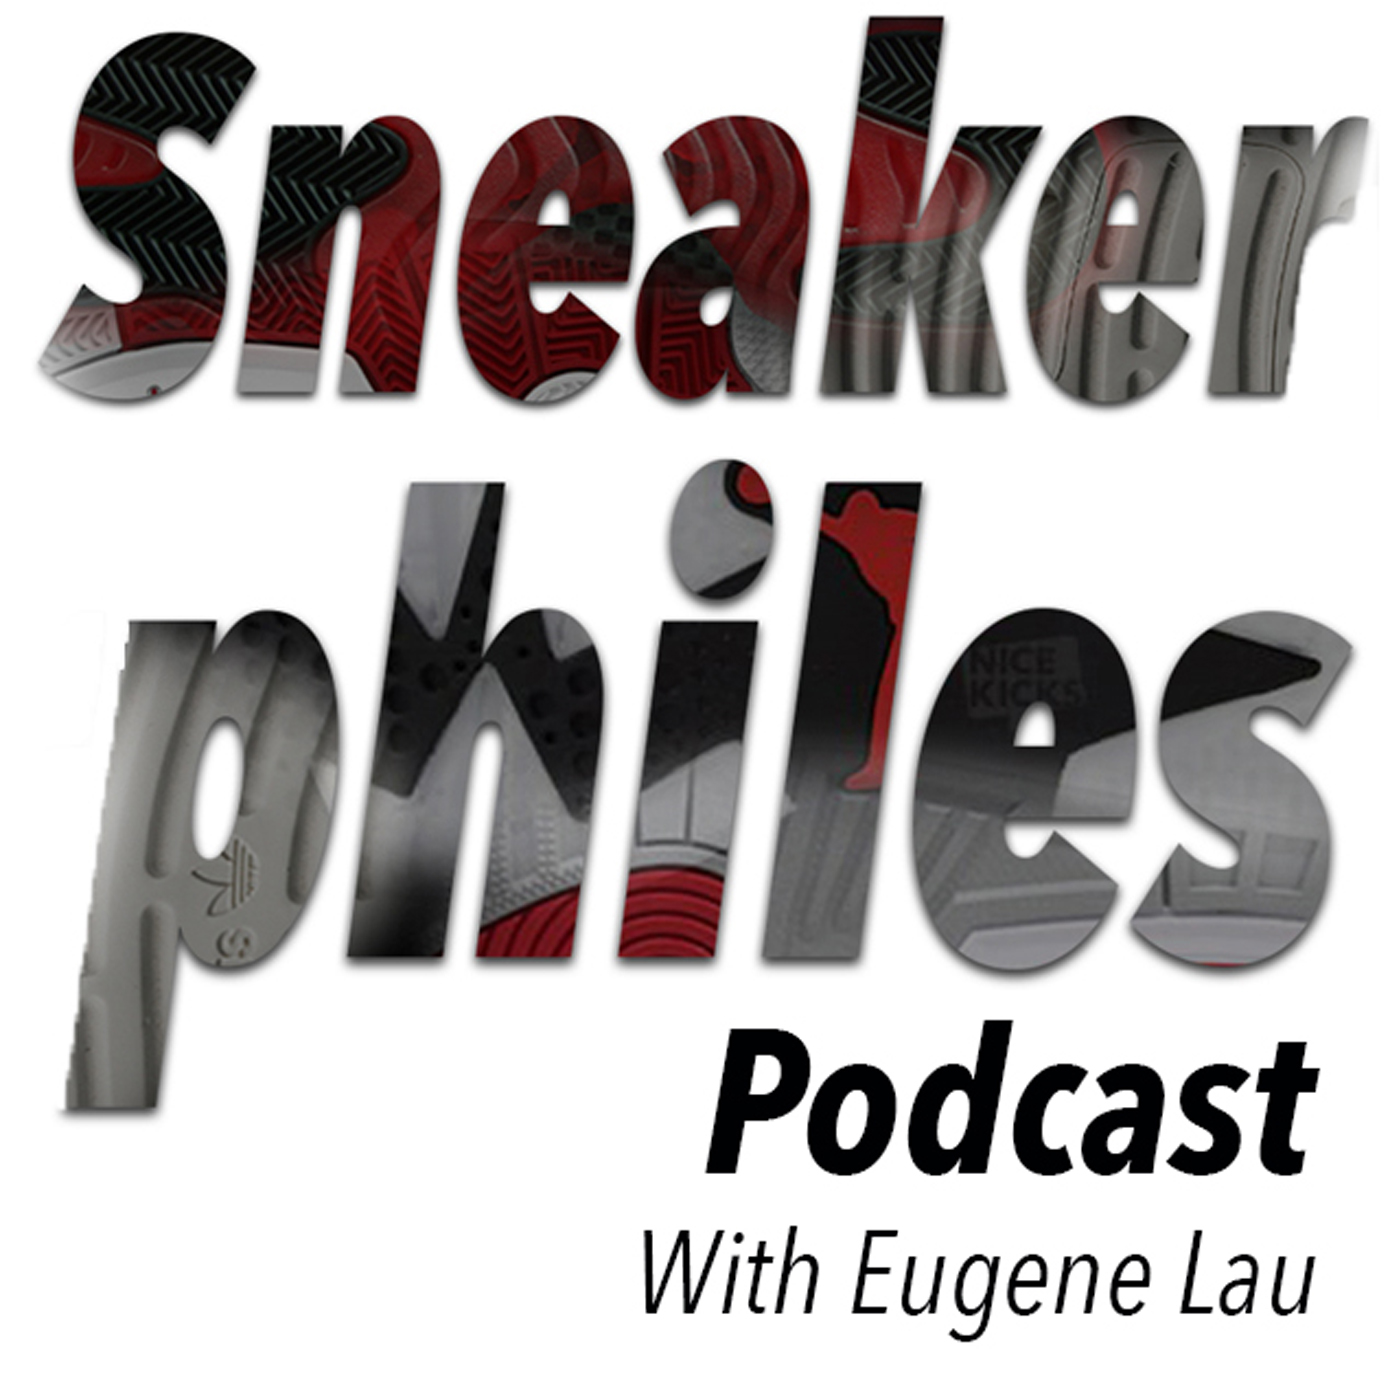 Sneakerphiles Podcast - A Podcast About Sneakers